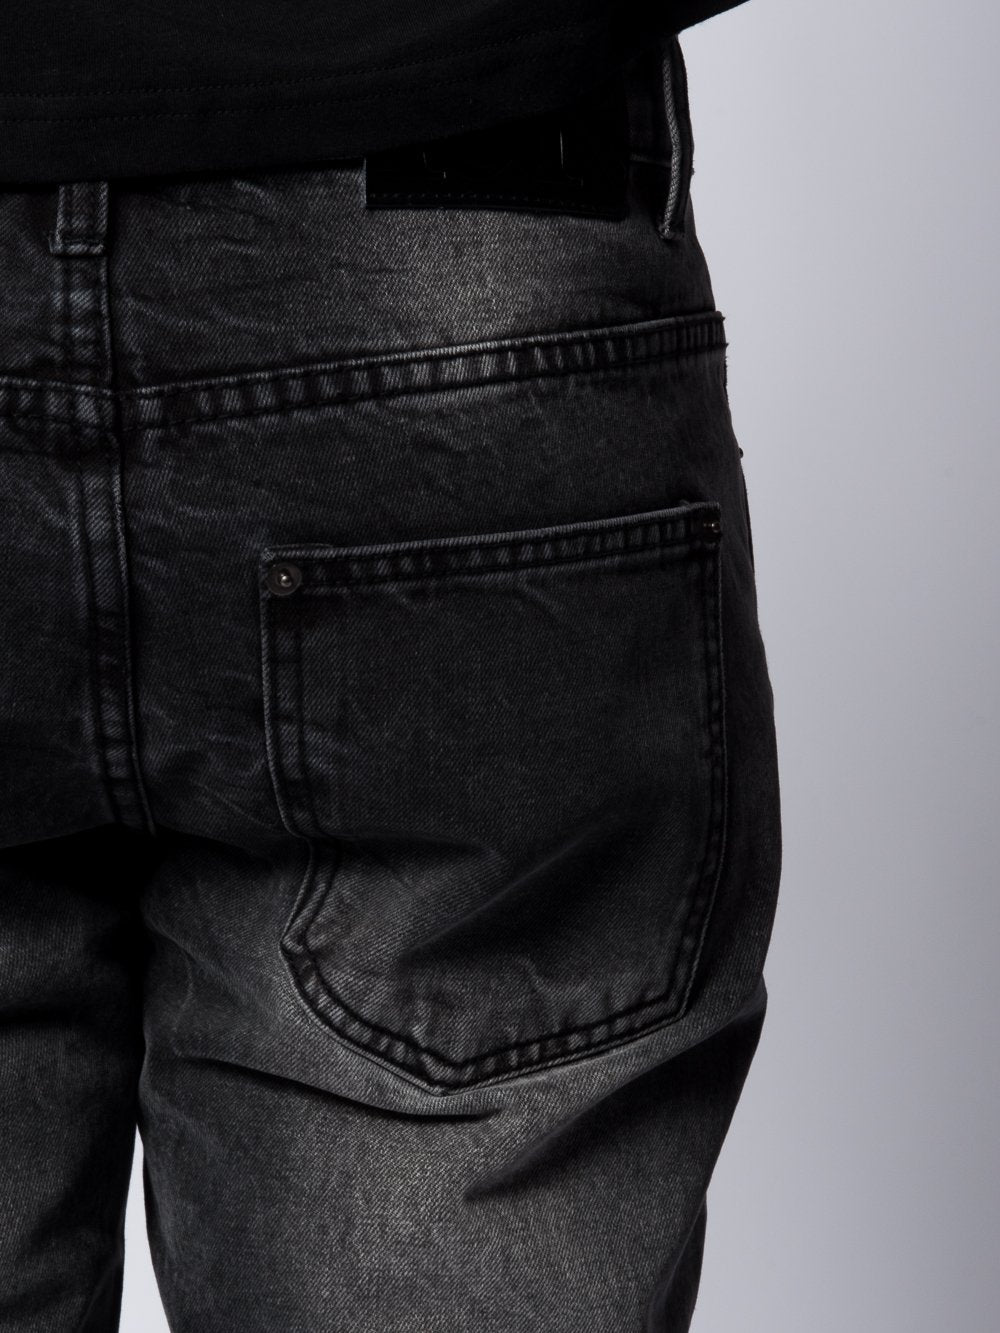 Young and Reckless Mens - Bottoms - Denim Jefferson Tapered Jeans- Black